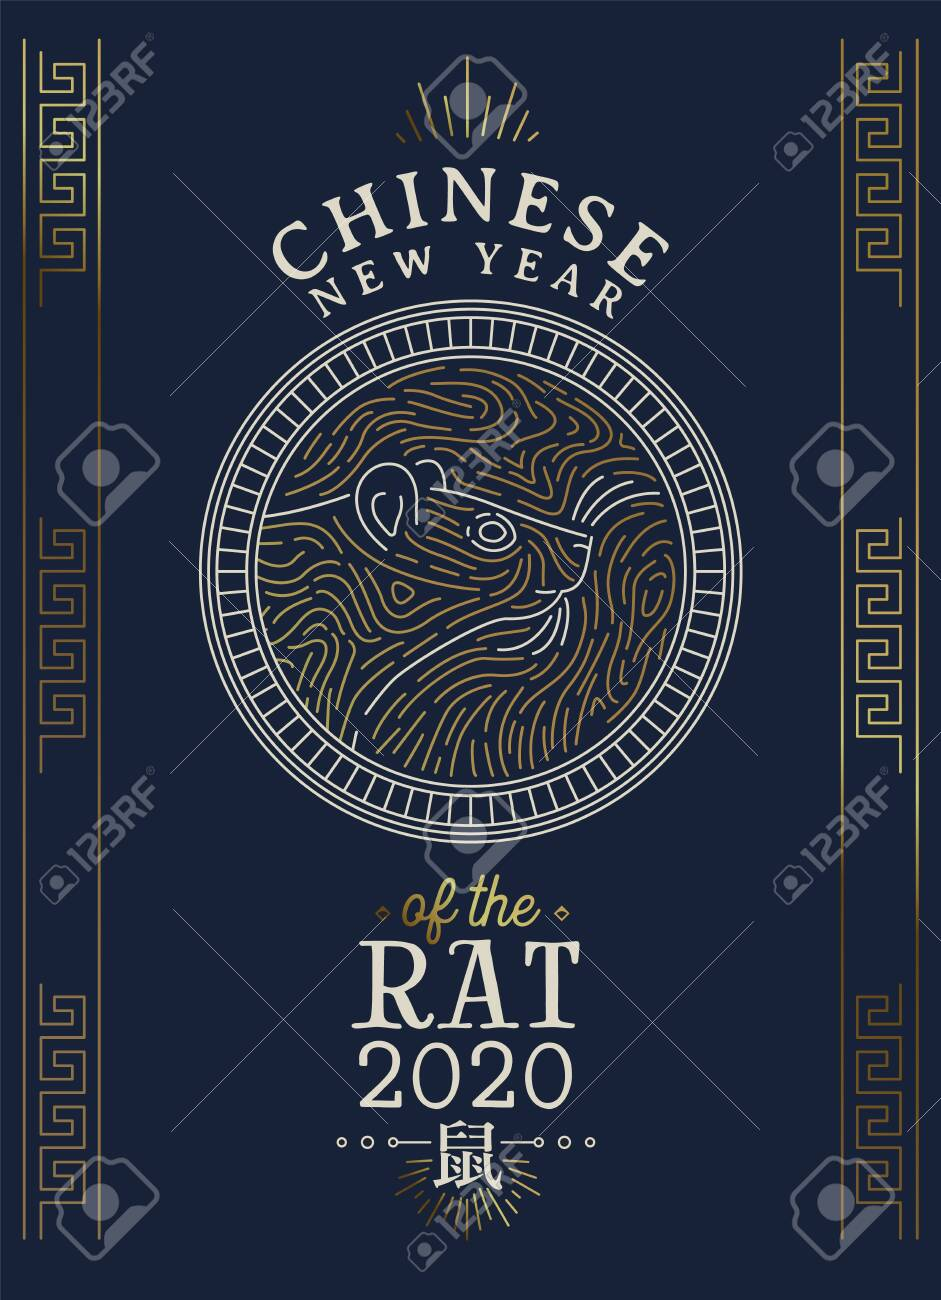 Chinese New Year 2020 greeting card of gold mouse animal medal decoration in modern line art style with traditional asian ornament. Calligraphy symbol translation: rat. - 131514448